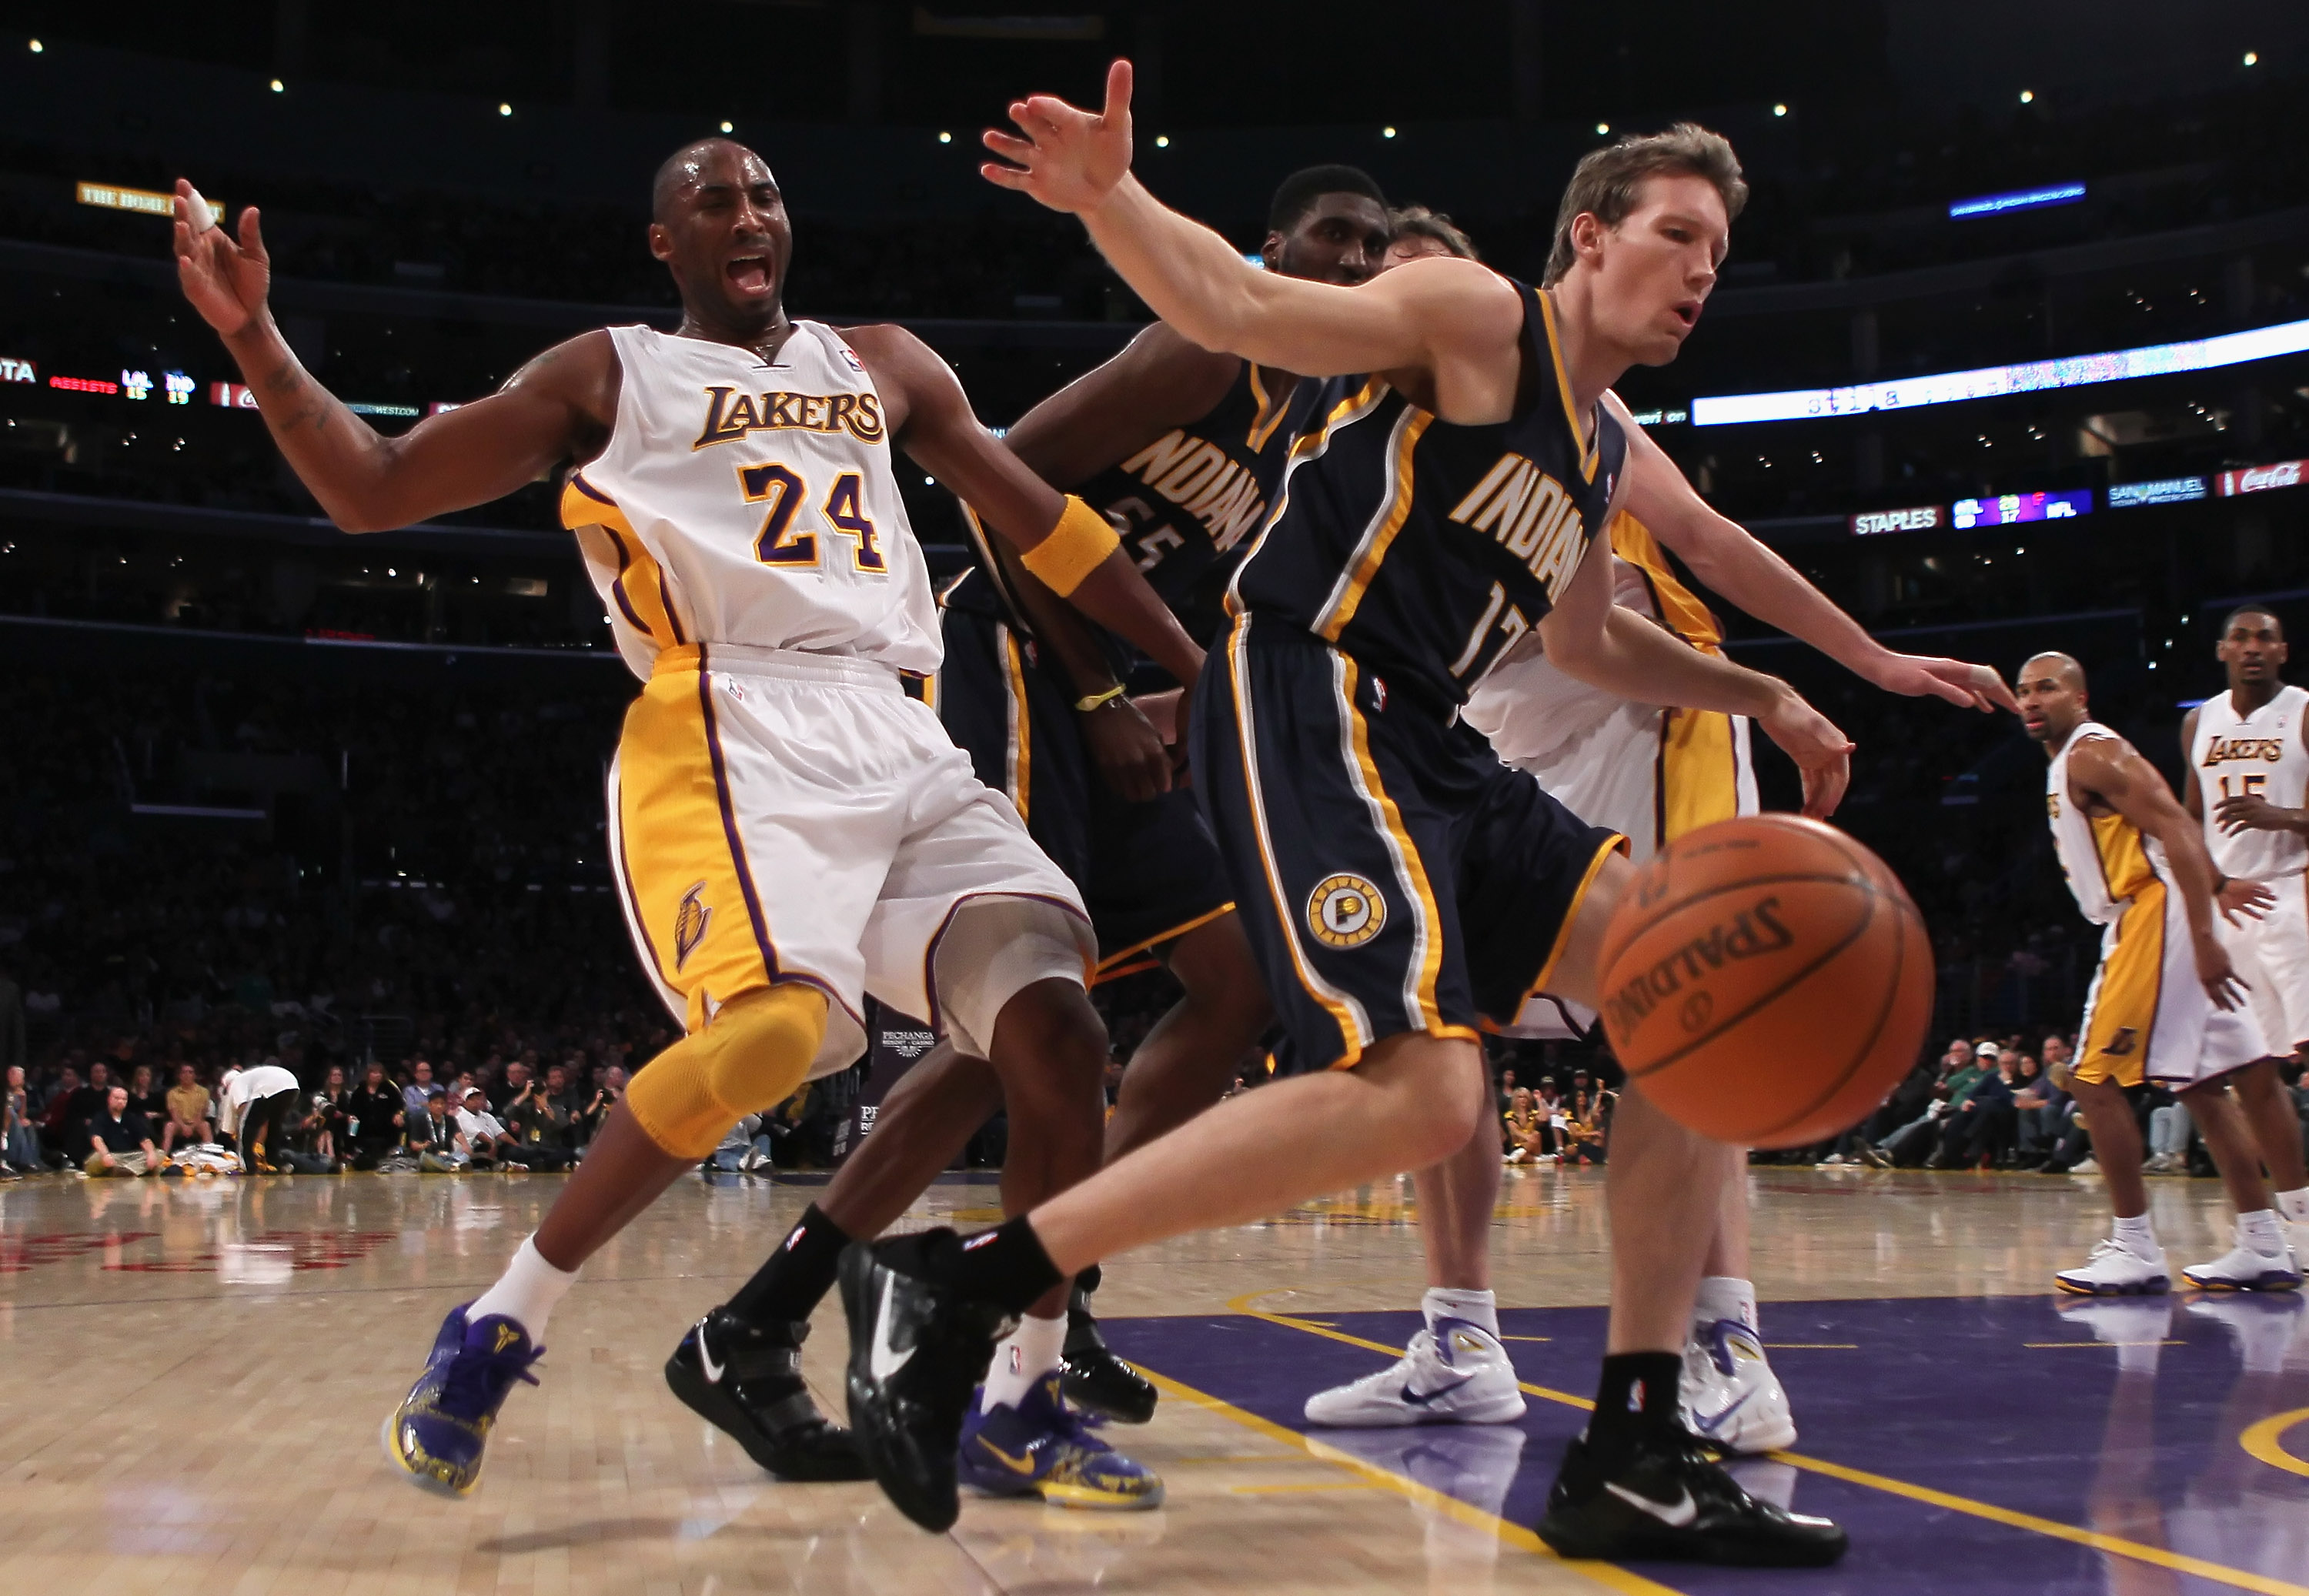 LOS ANGELES, CA - NOVEMBER 28:  Kobe Bryant #24 of the Los Angeles Lakers is fouled by Mike Dunleavy #17 of the Indiana Pacers during the third quarter at Staples Center on November 28, 2010 in Los Angeles, California. The Pacers defeated the Lakers 95-92